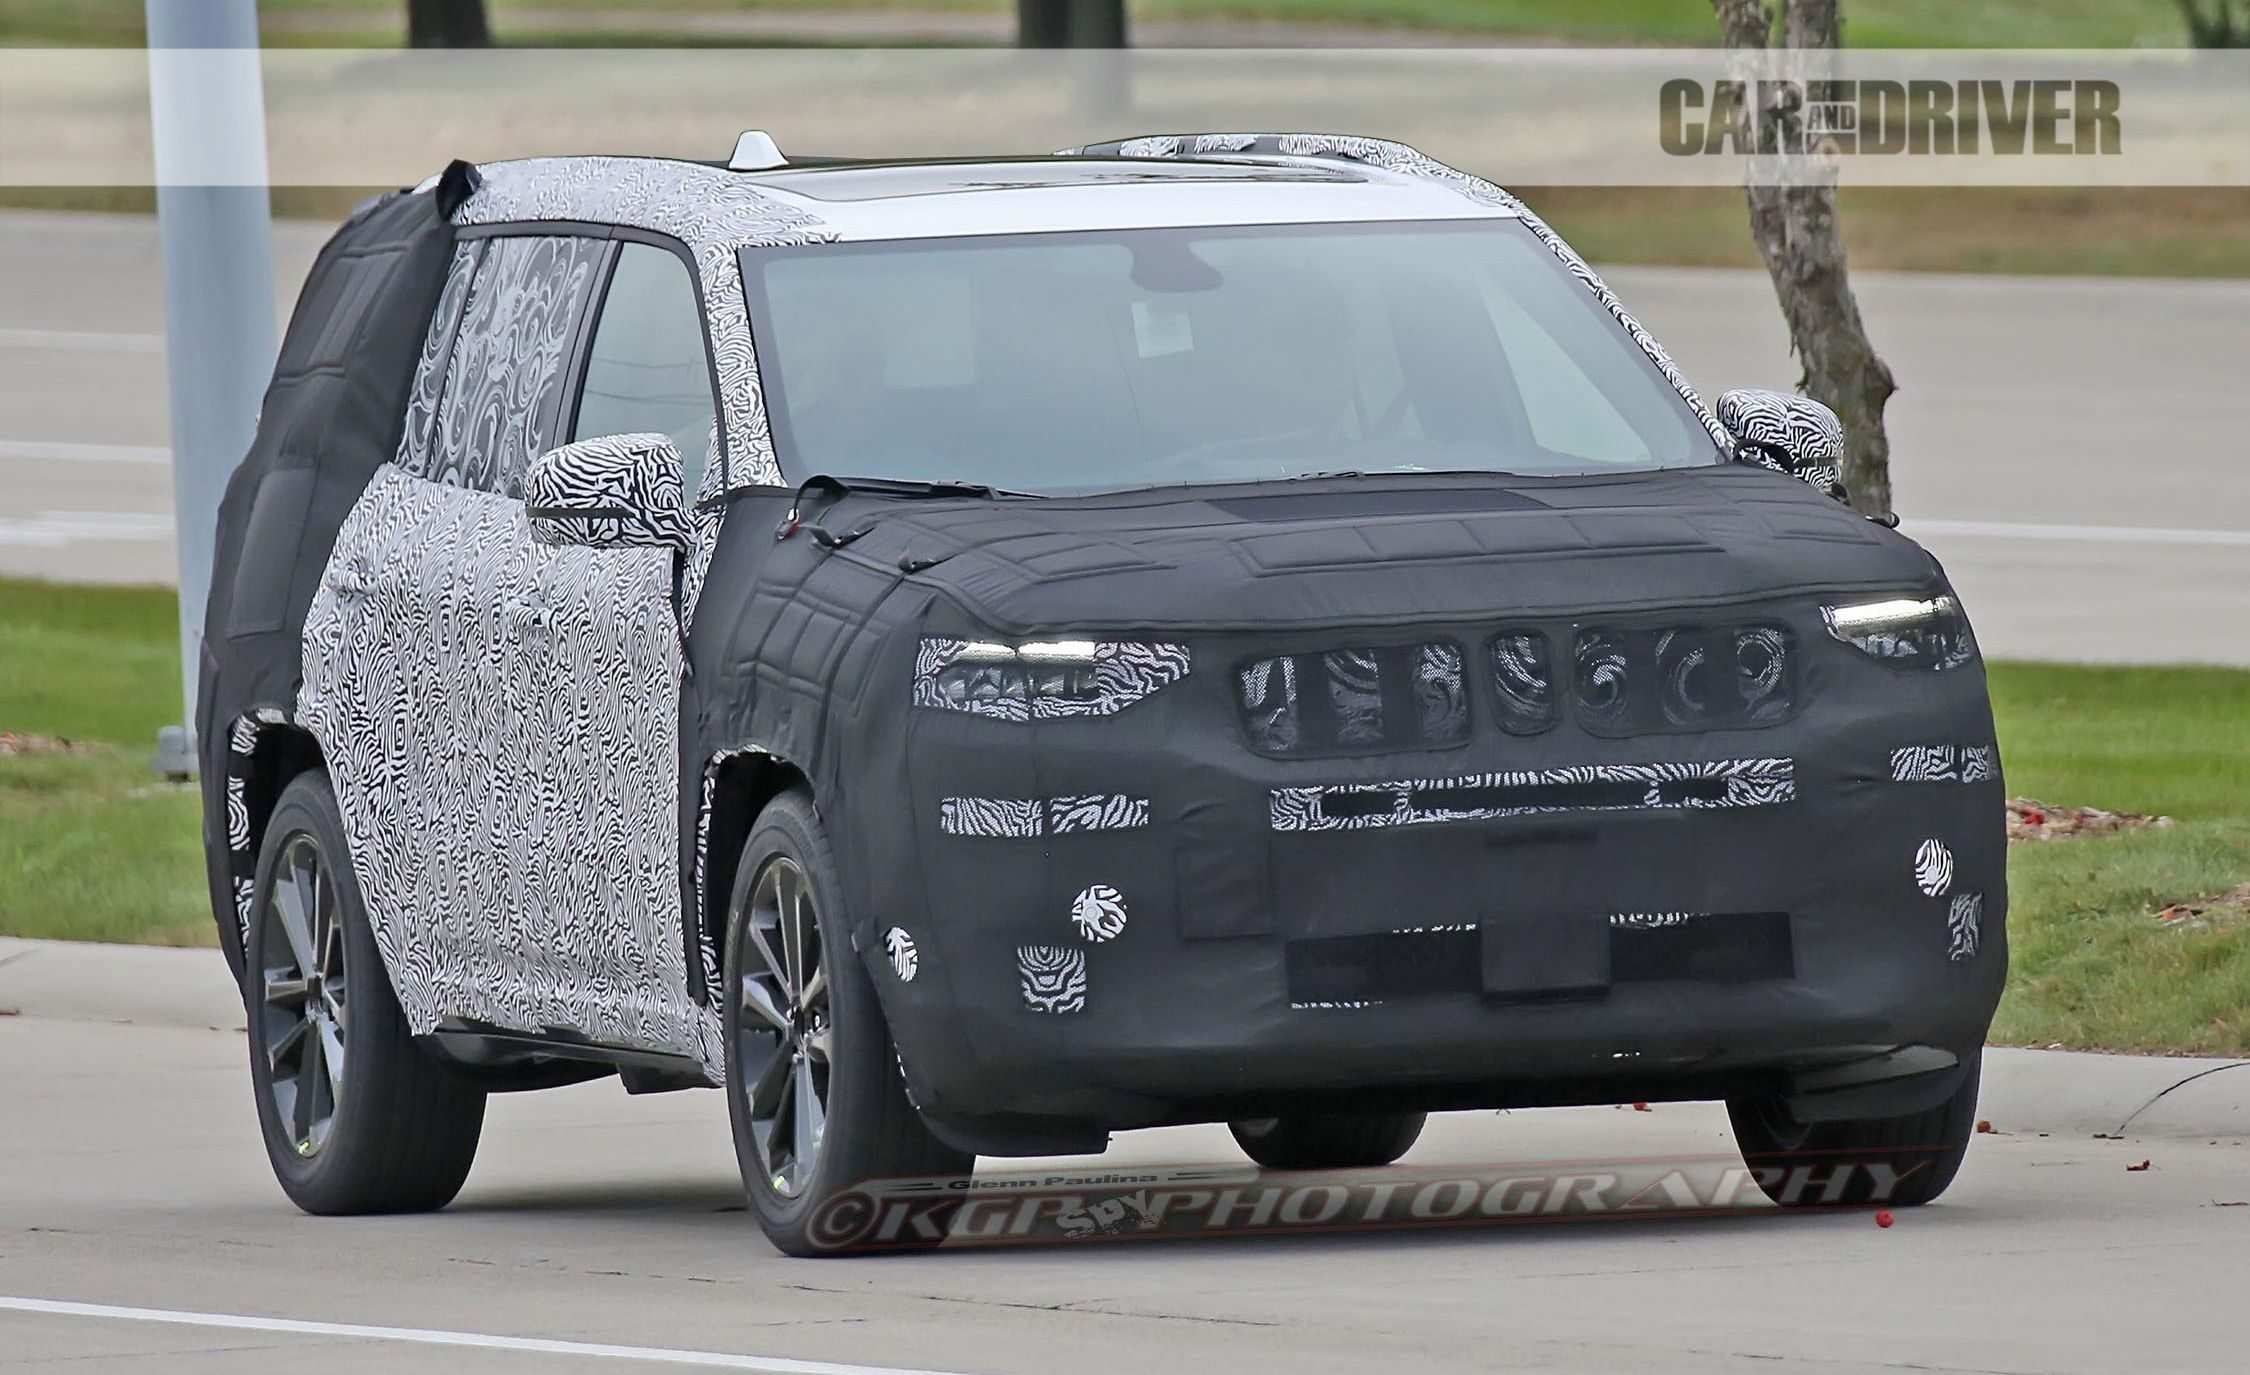 71 New 2020 Chrysler Suv First Drive by 2020 Chrysler Suv